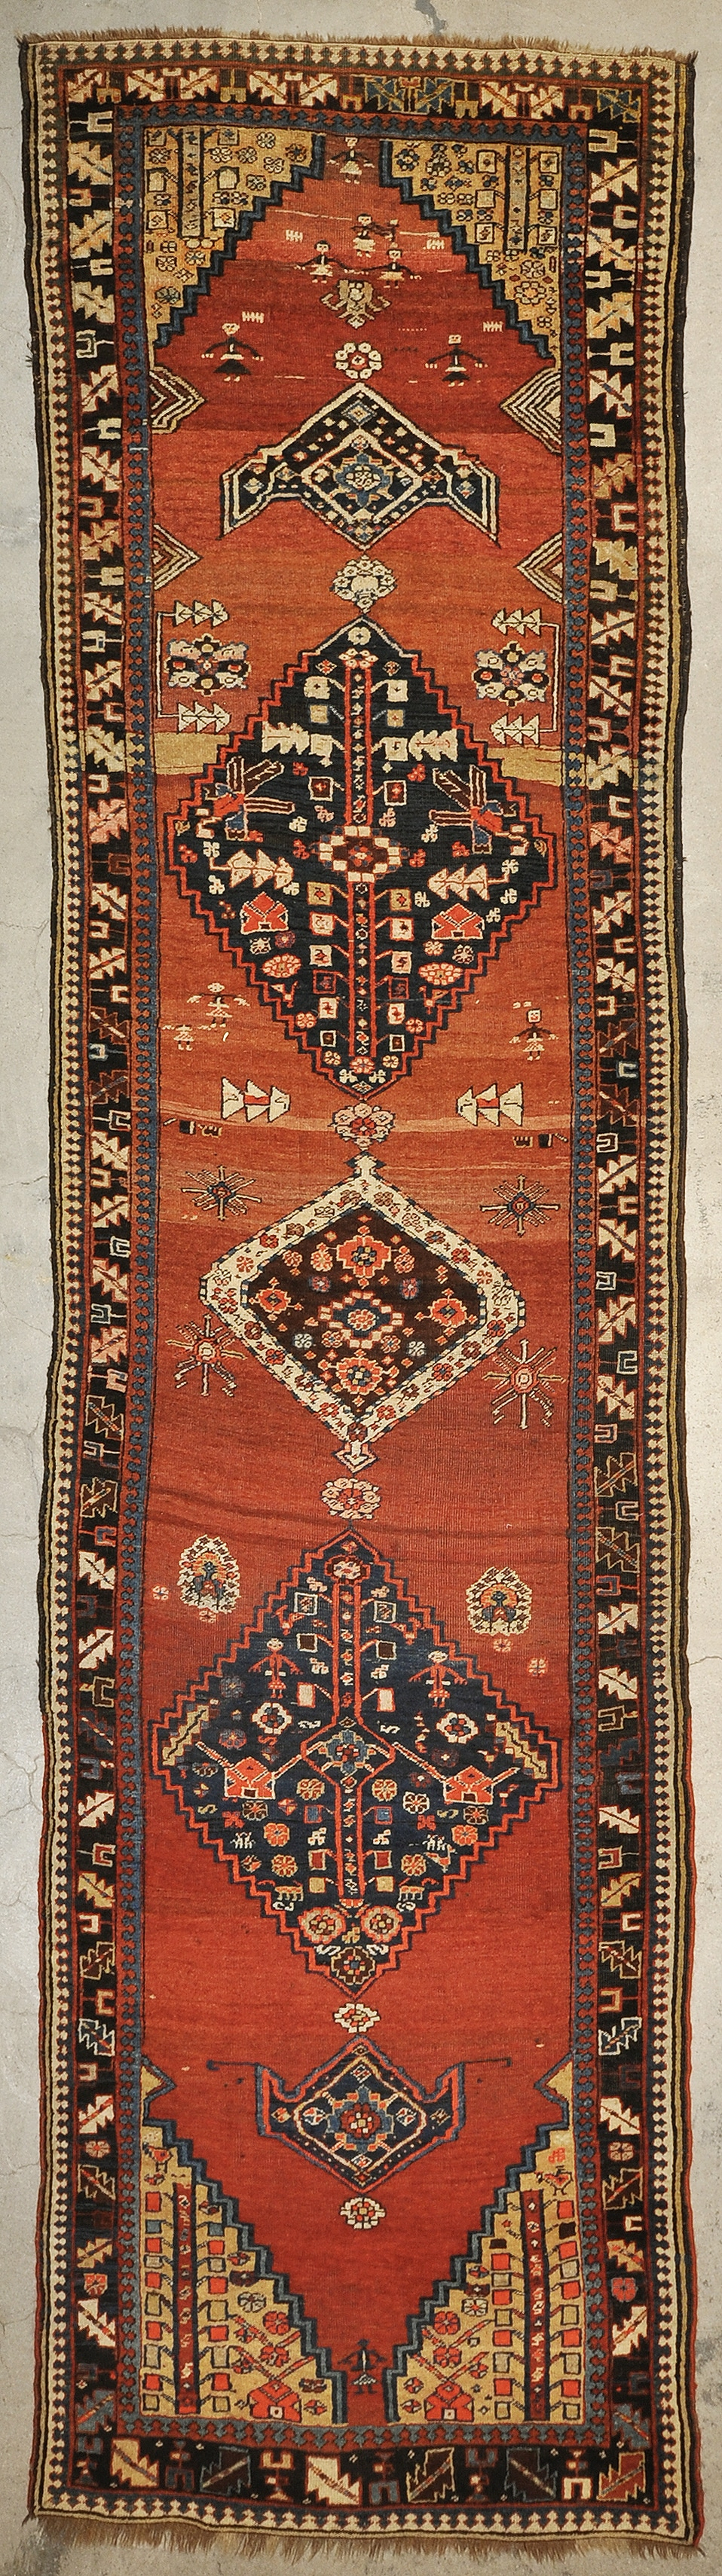 Antique Wedding Bijar Runner Rug